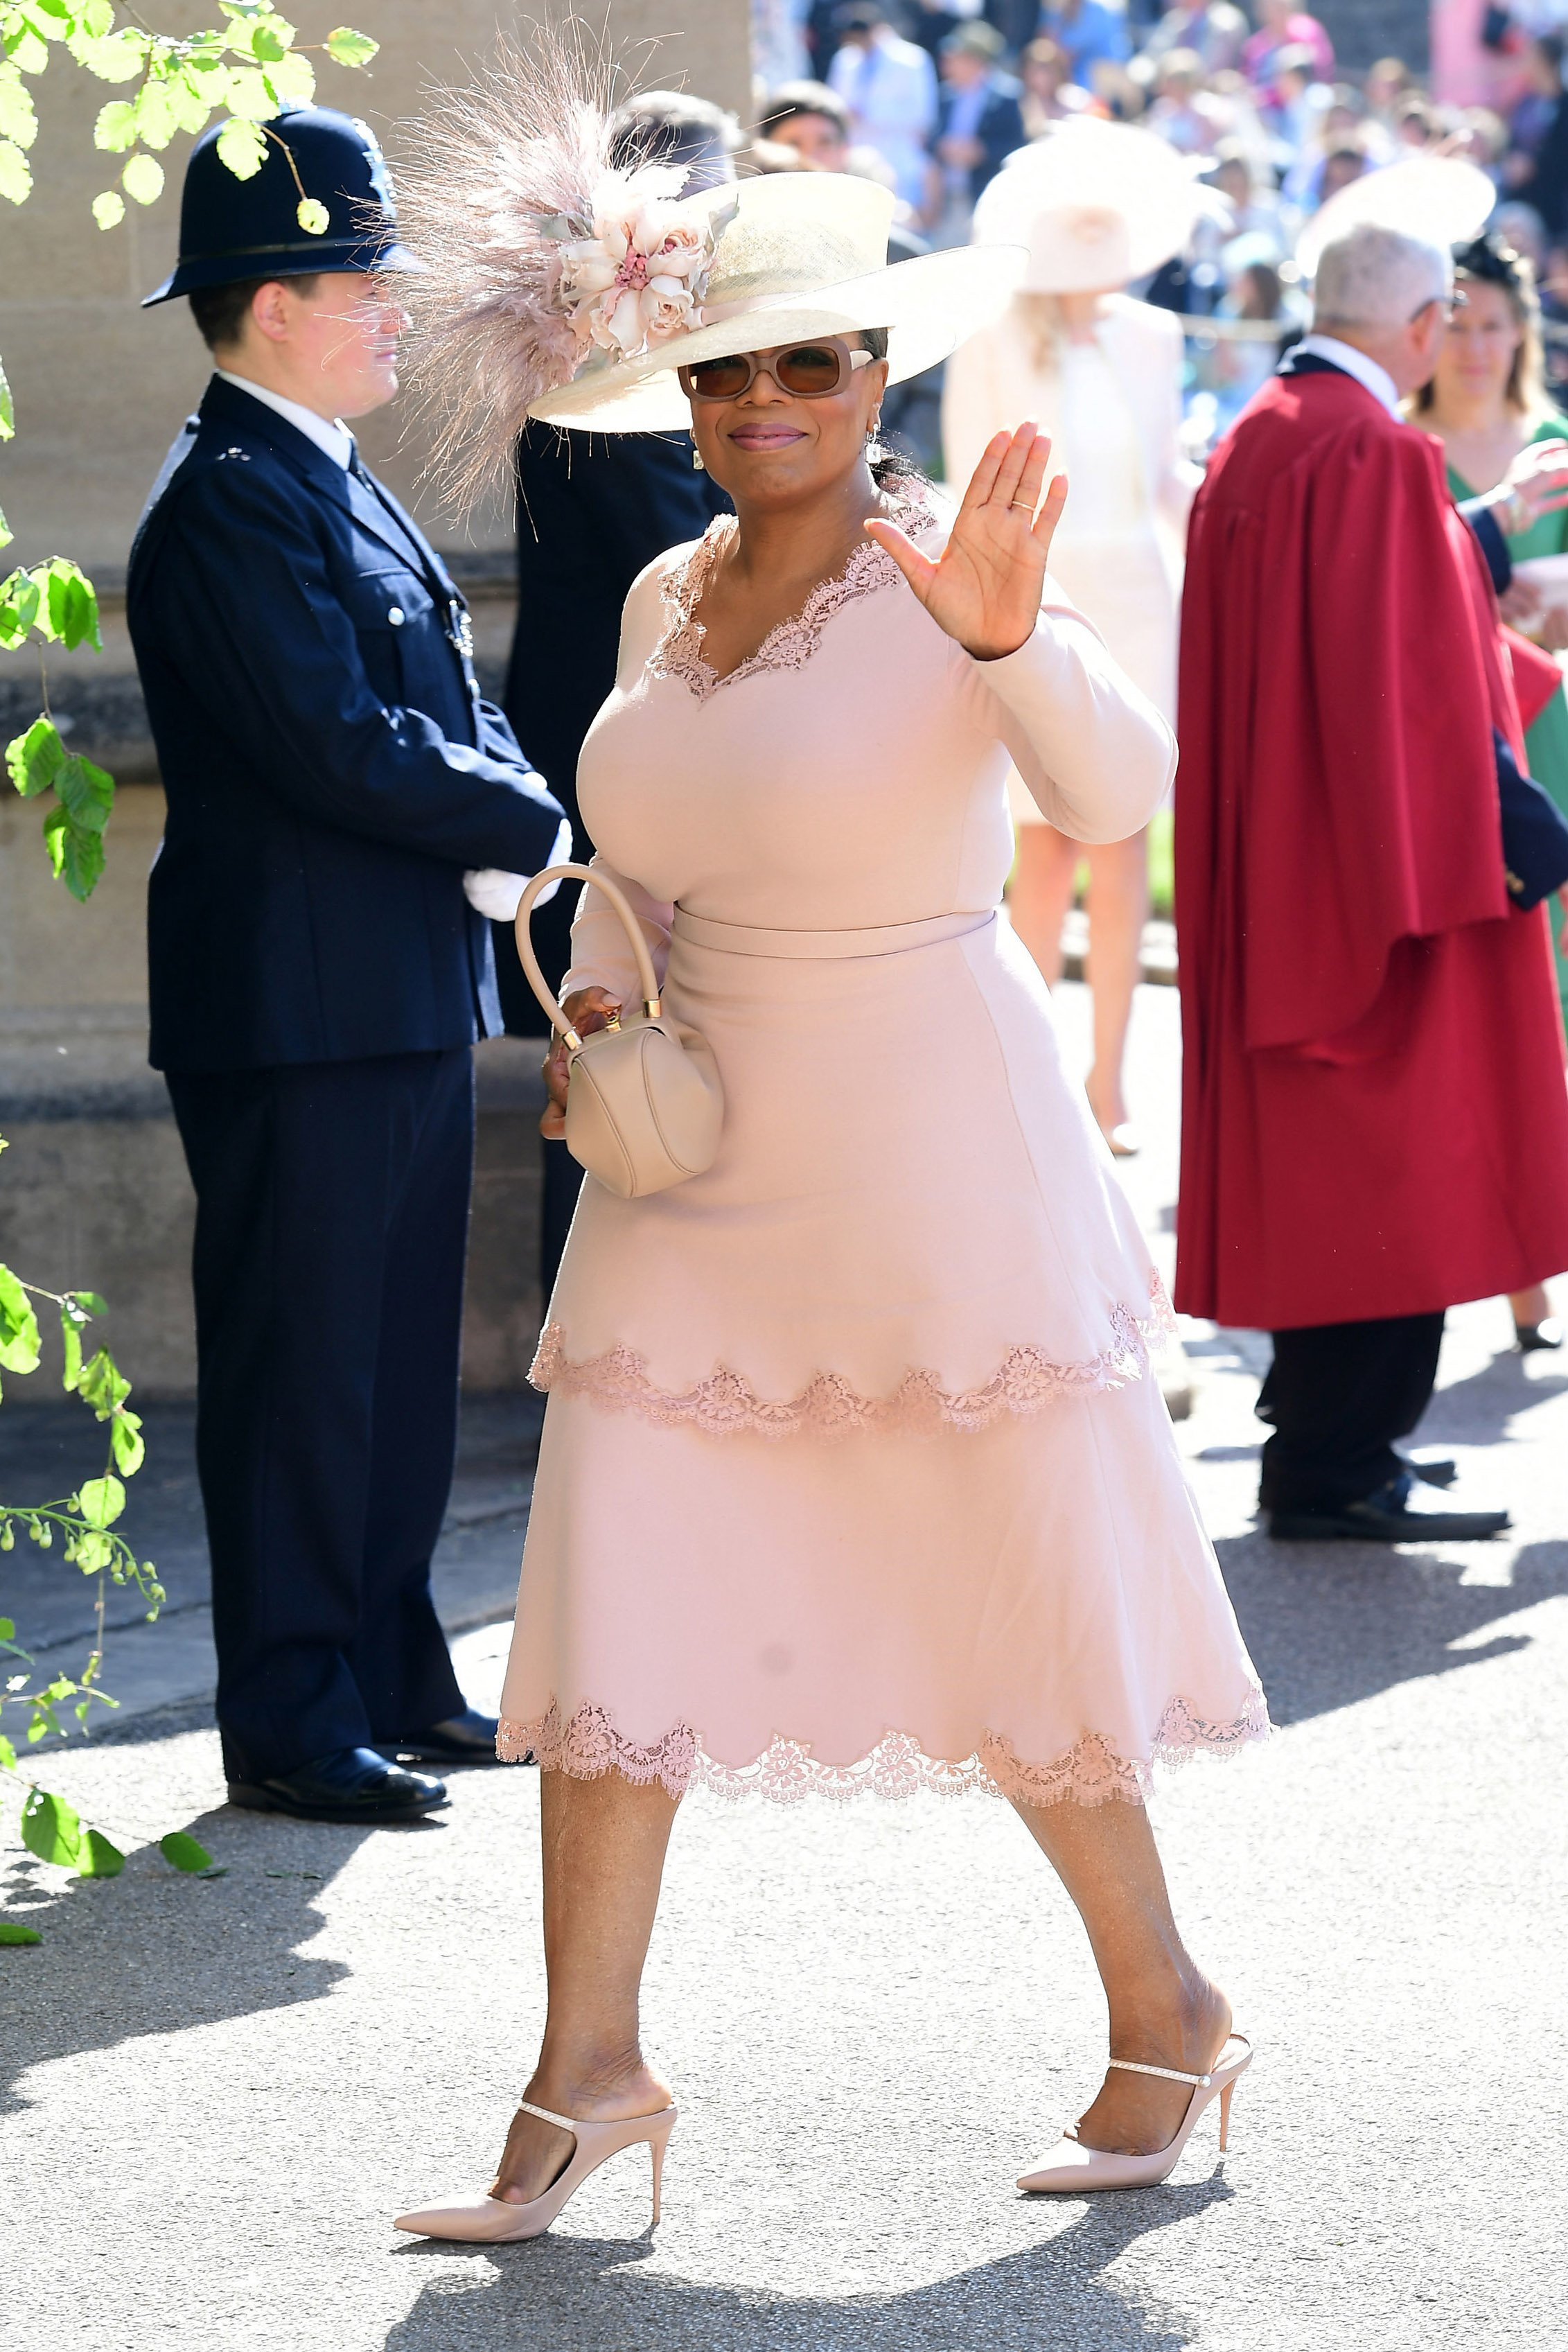 Oprah Winfrey arrives at St George's Chapel at Windsor Castle before the wedding of Prince Harry to Meghan Markle on May 19, 2018| Photo: Getty Images